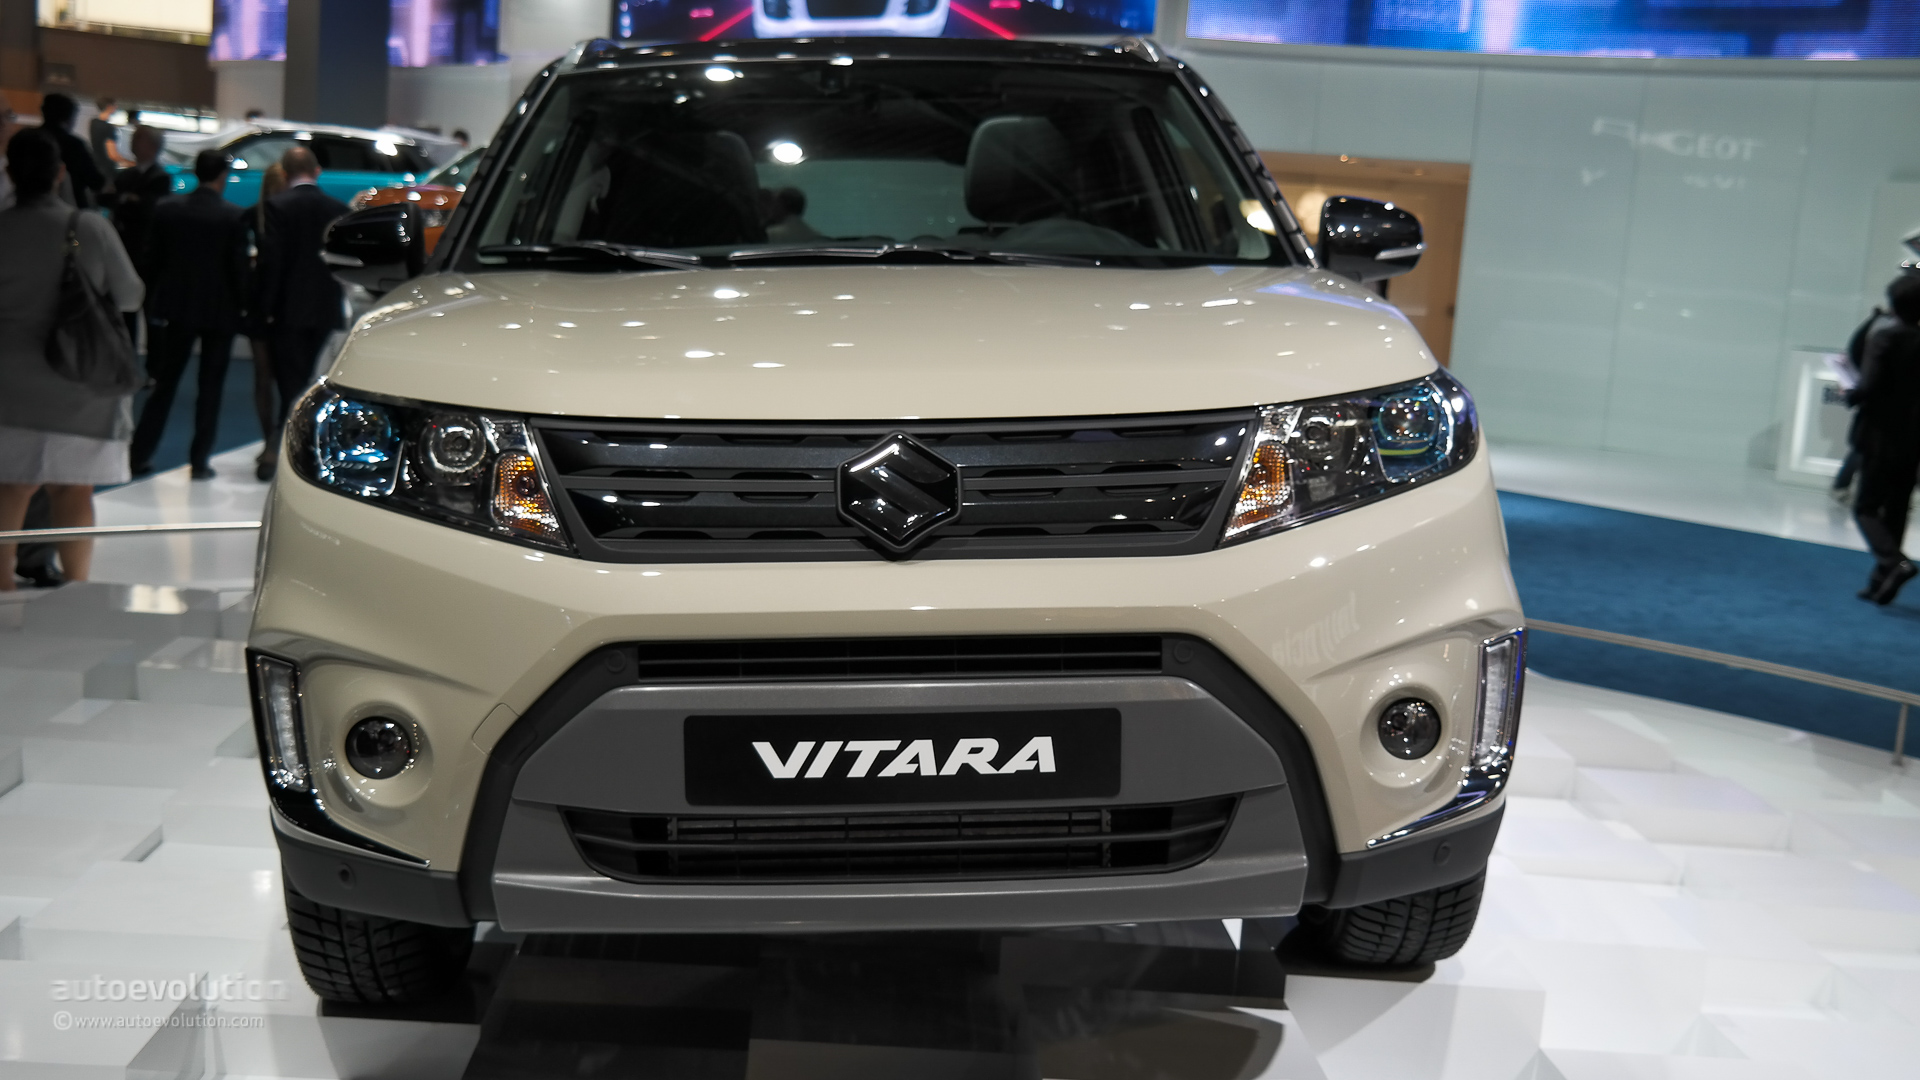 new suzuki vitara unveiled at paris auto show pakwheels blog. Black Bedroom Furniture Sets. Home Design Ideas